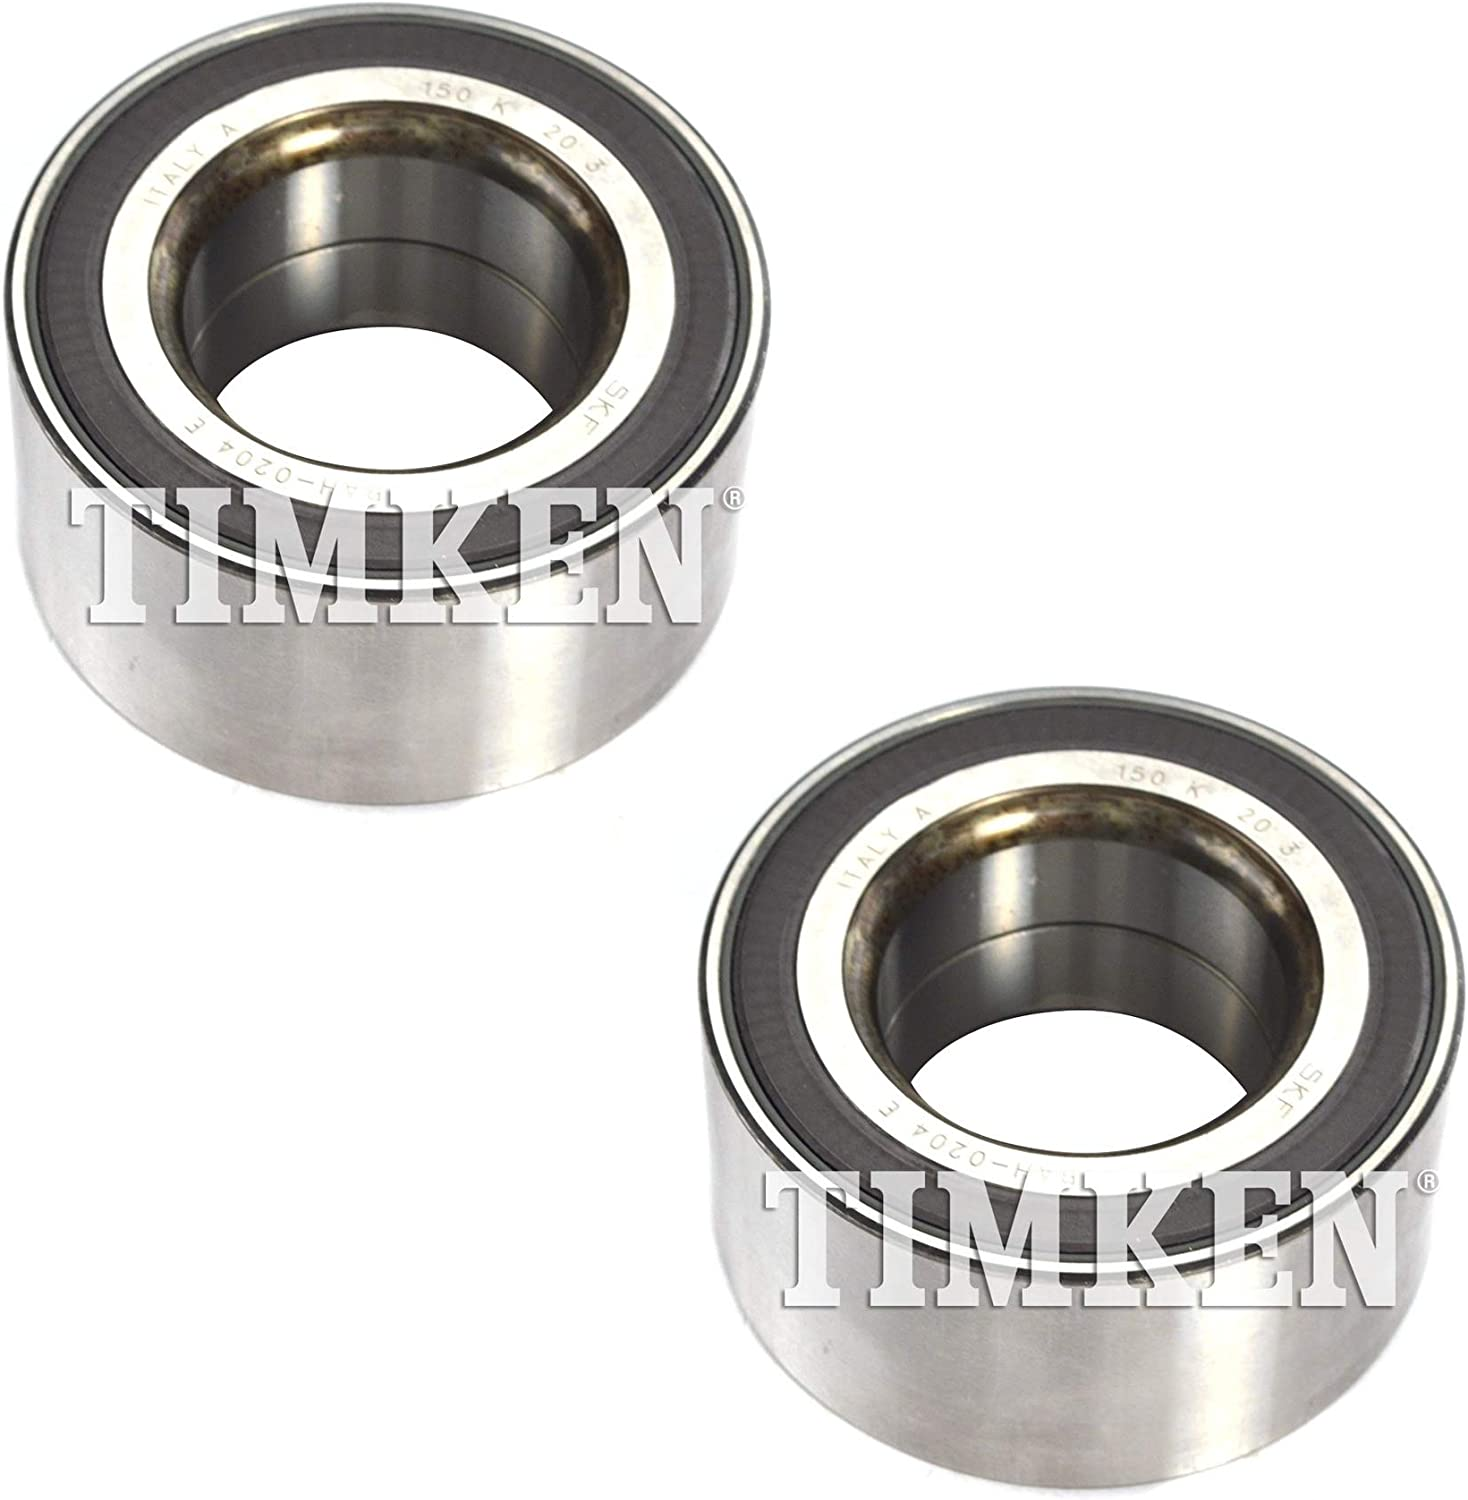 NEW Pair Set Of 2 Rear Reservation Timken for BMW Bearings F23 F30 Genuine Free Shipping F22 Wheel